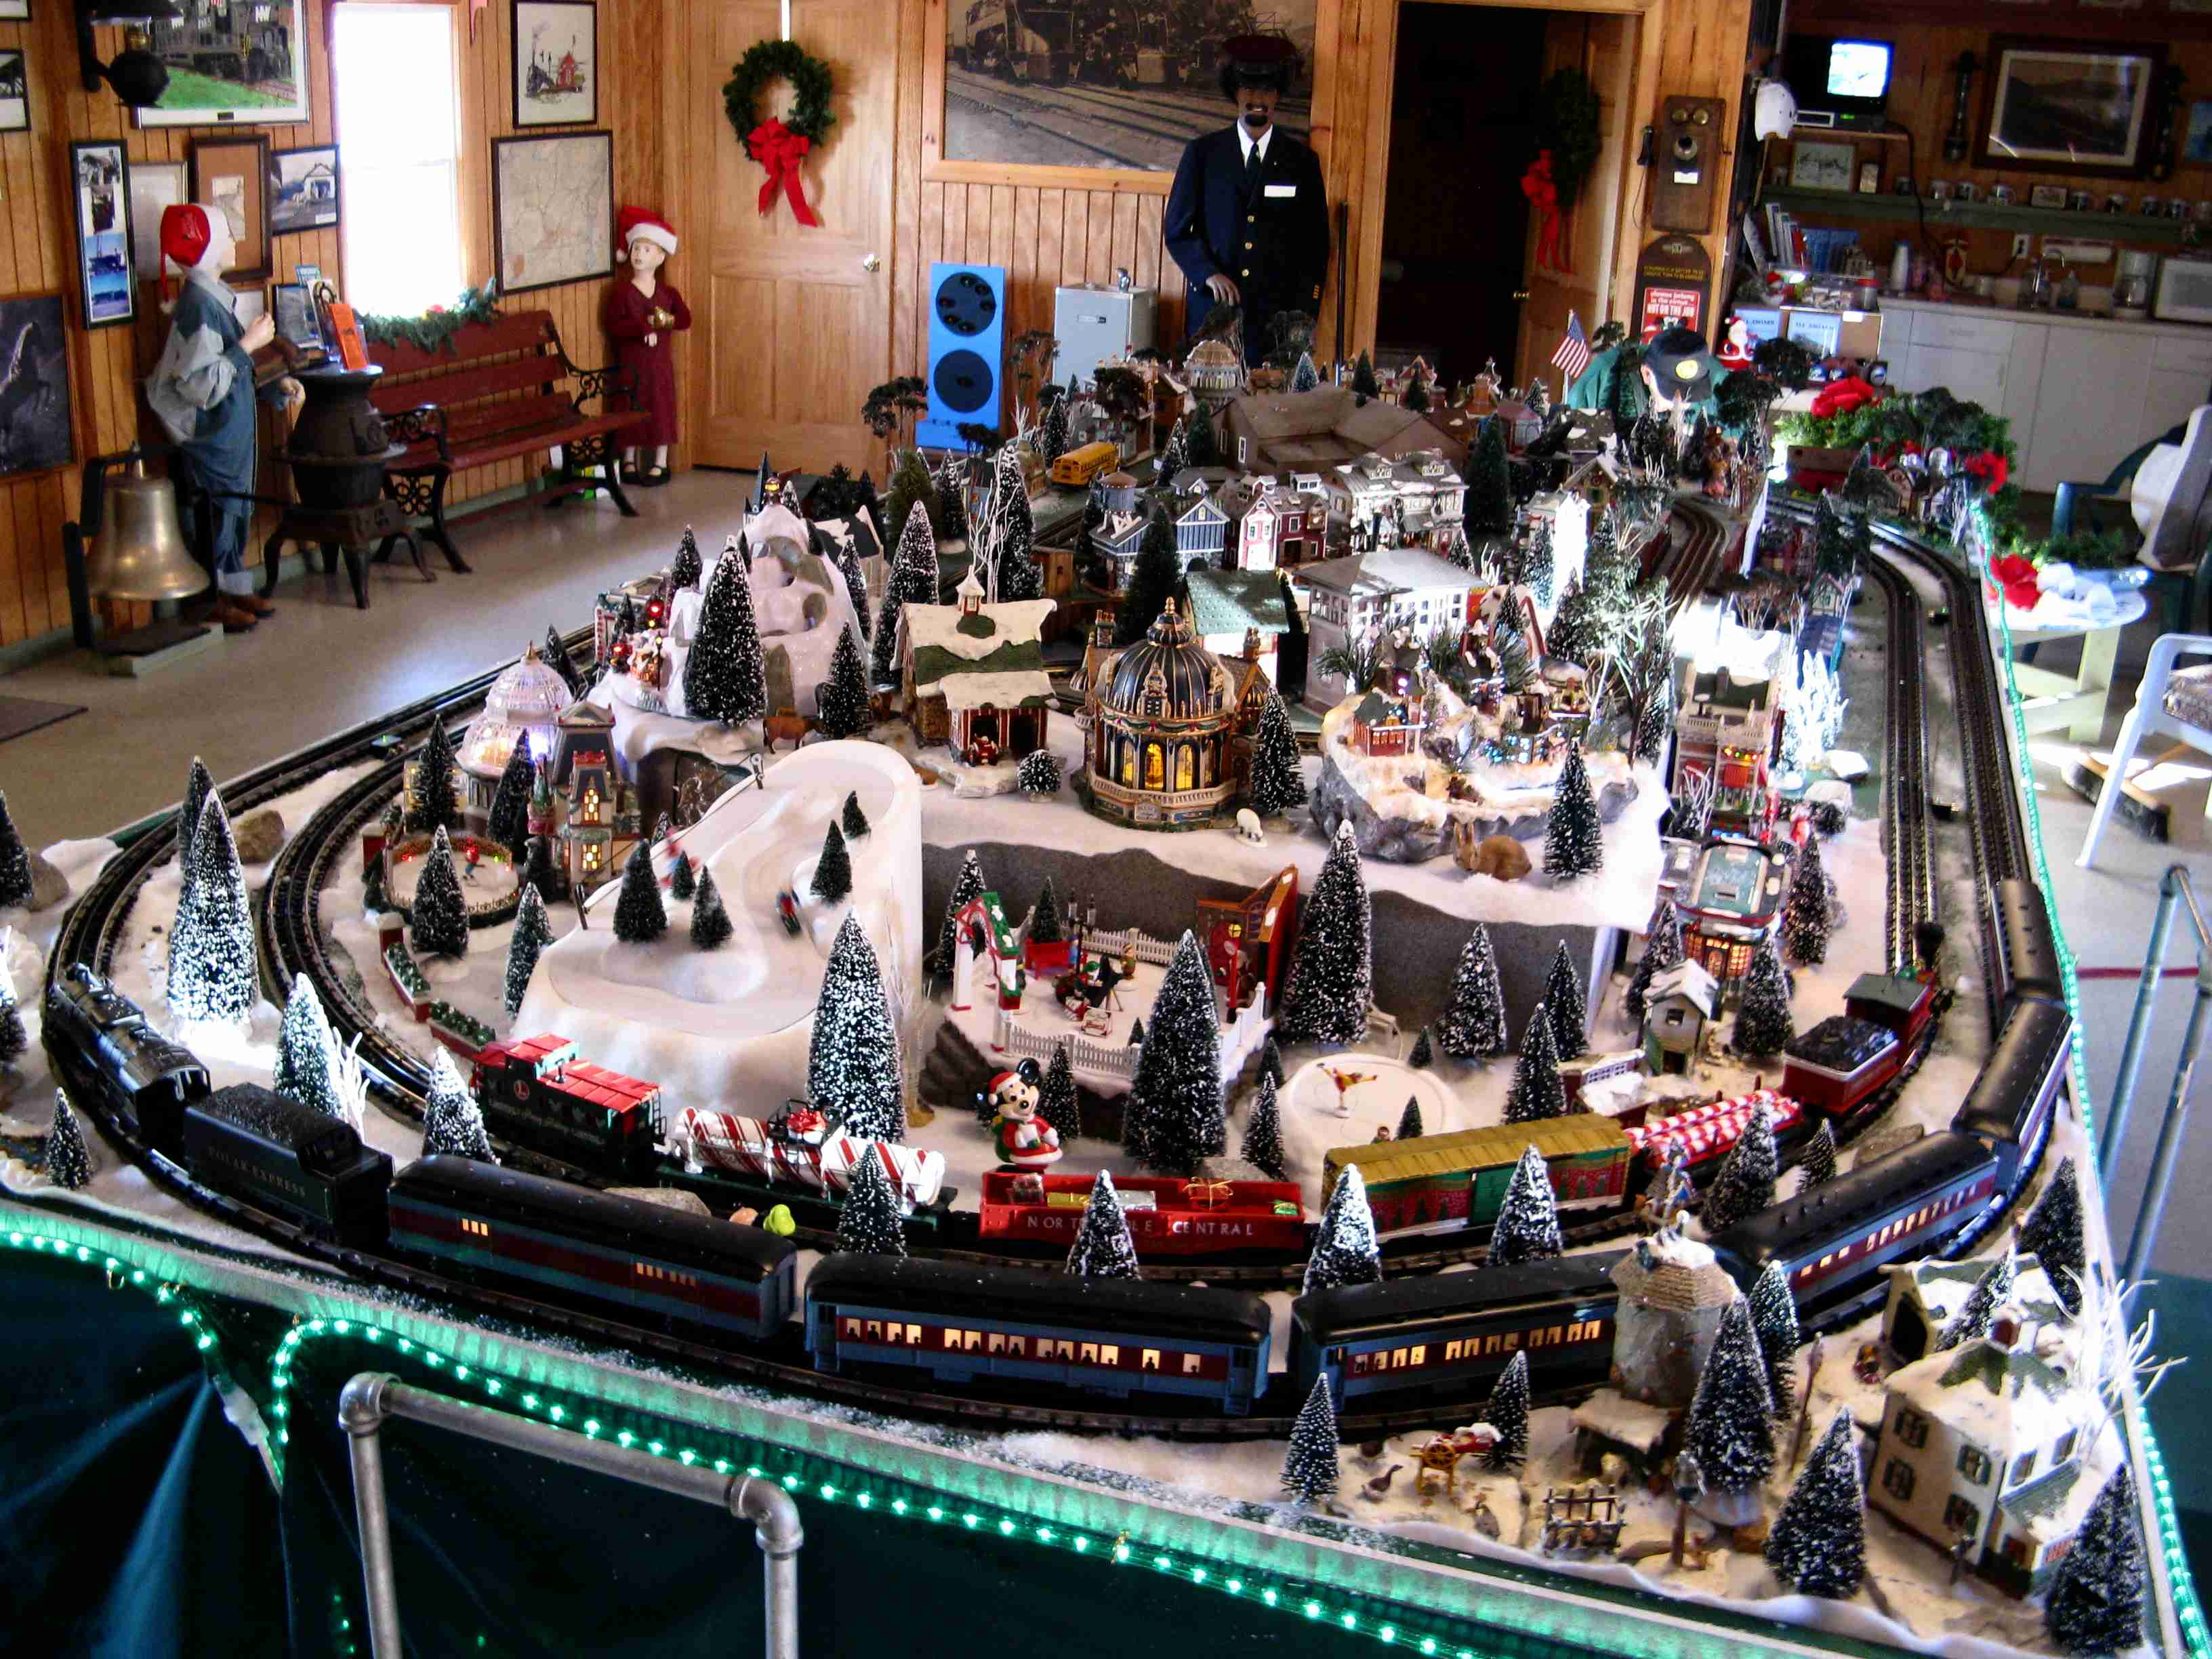 crewe-christmas-layout-tour-2007-overall-view.jpg